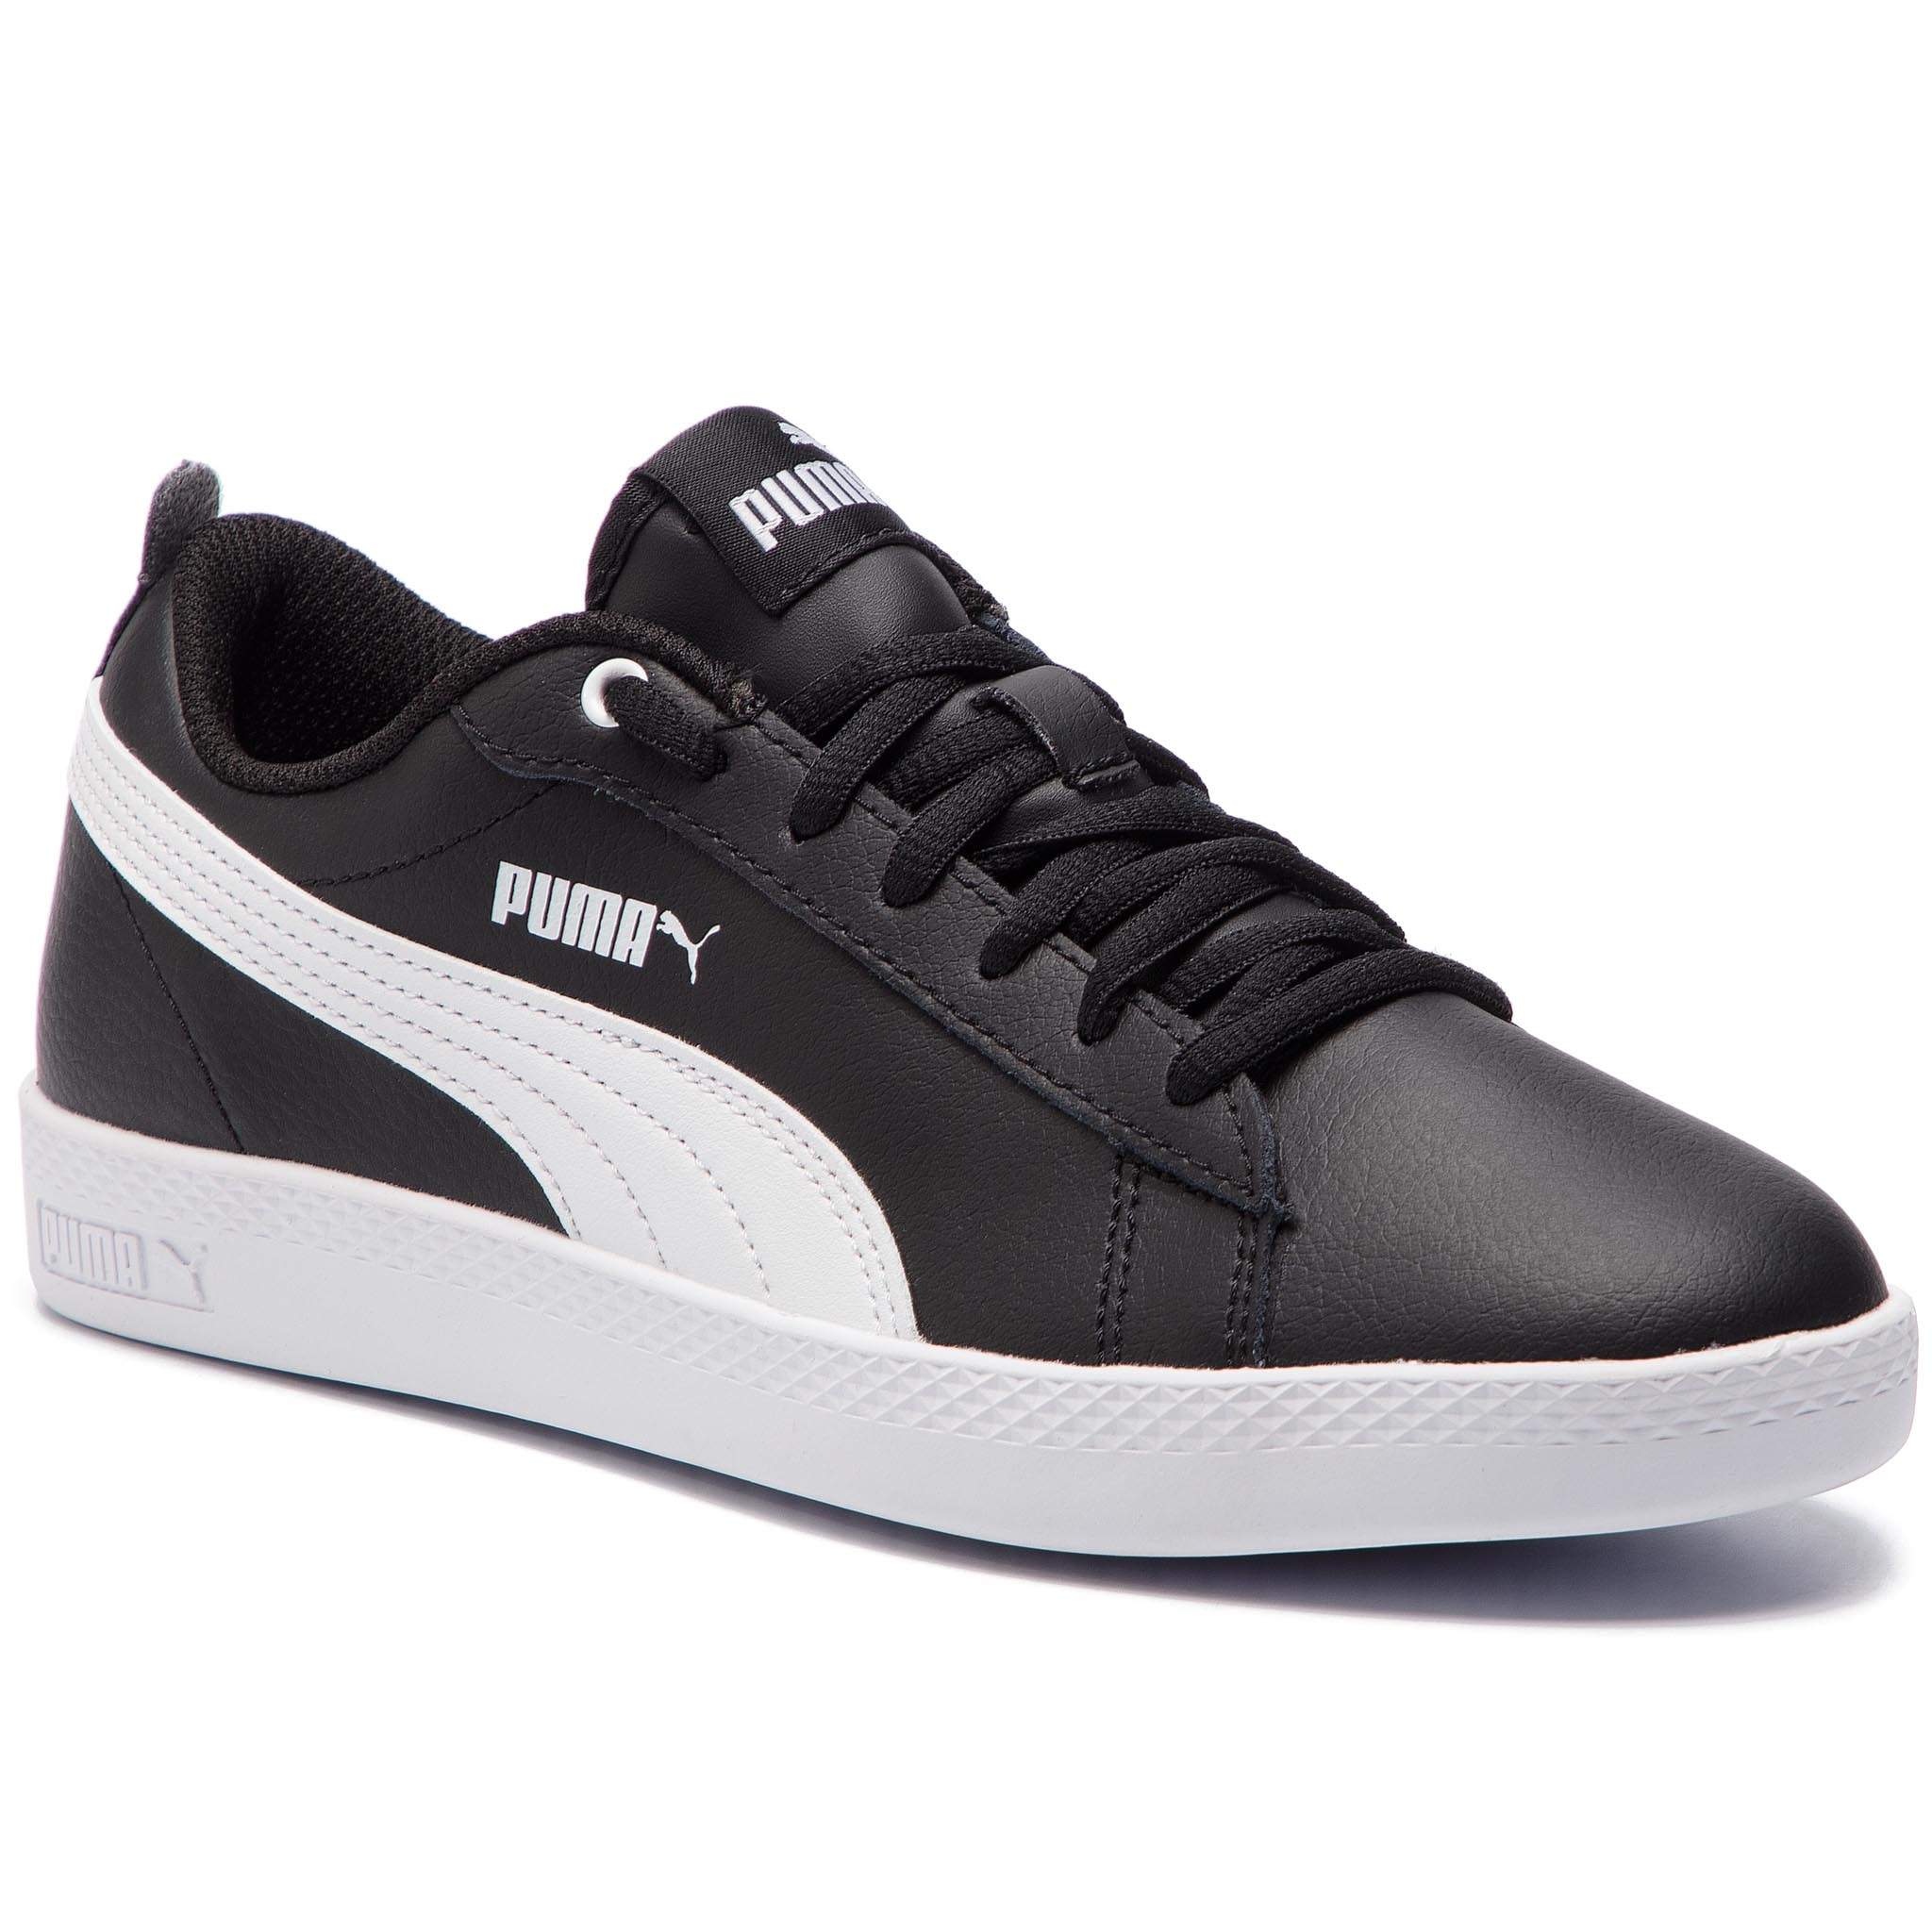 Sneakers PUMA - Smash Wns V2 L 365208 02 Puma Black/Puma White